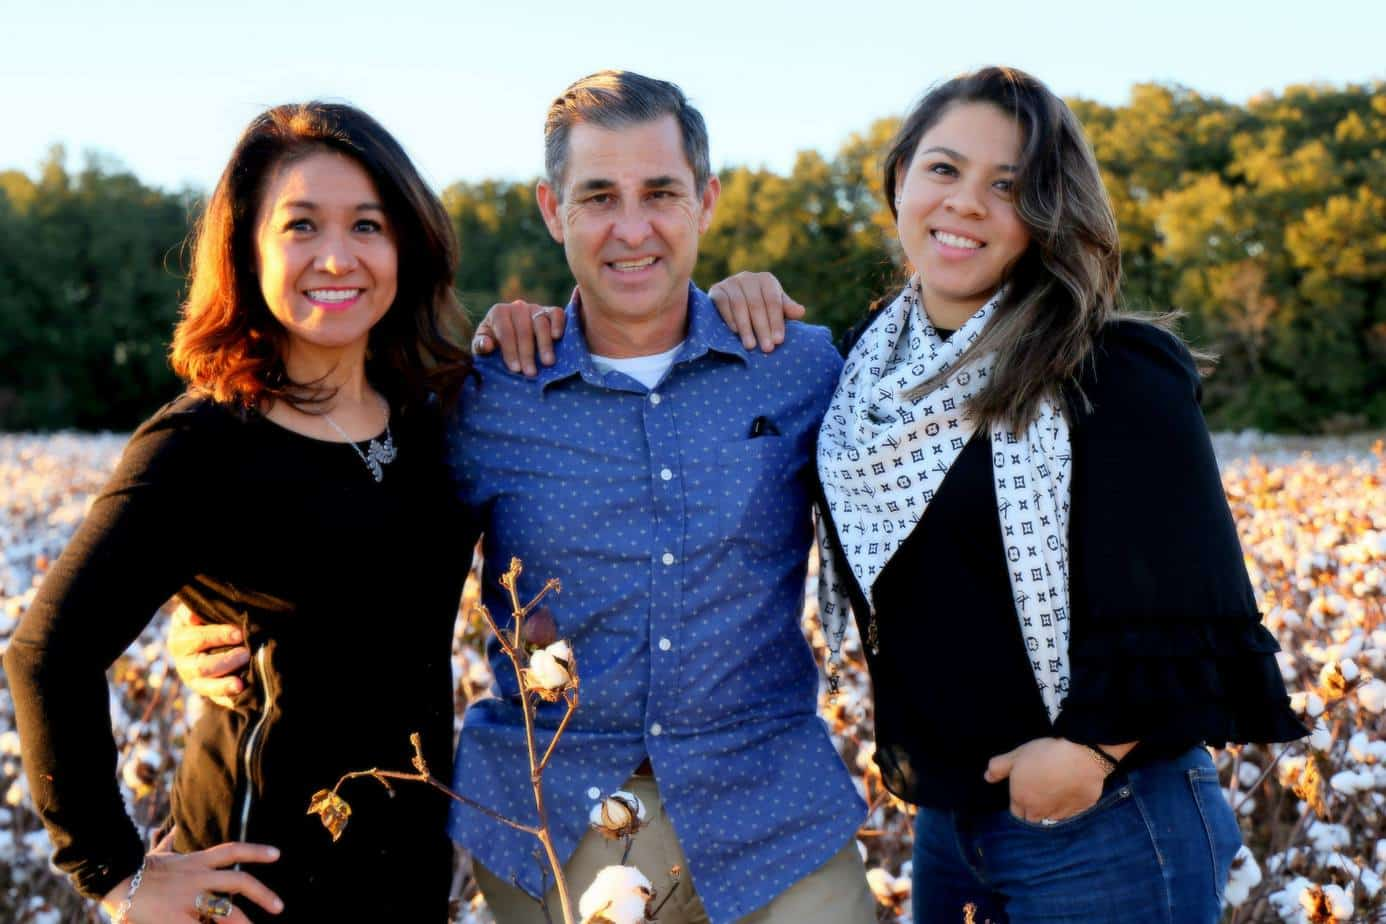 Ed, Ana & Cristi 's vision is to fulfill God's vision to Declare His Glory among the nations, His marvelous works among all the peoples!